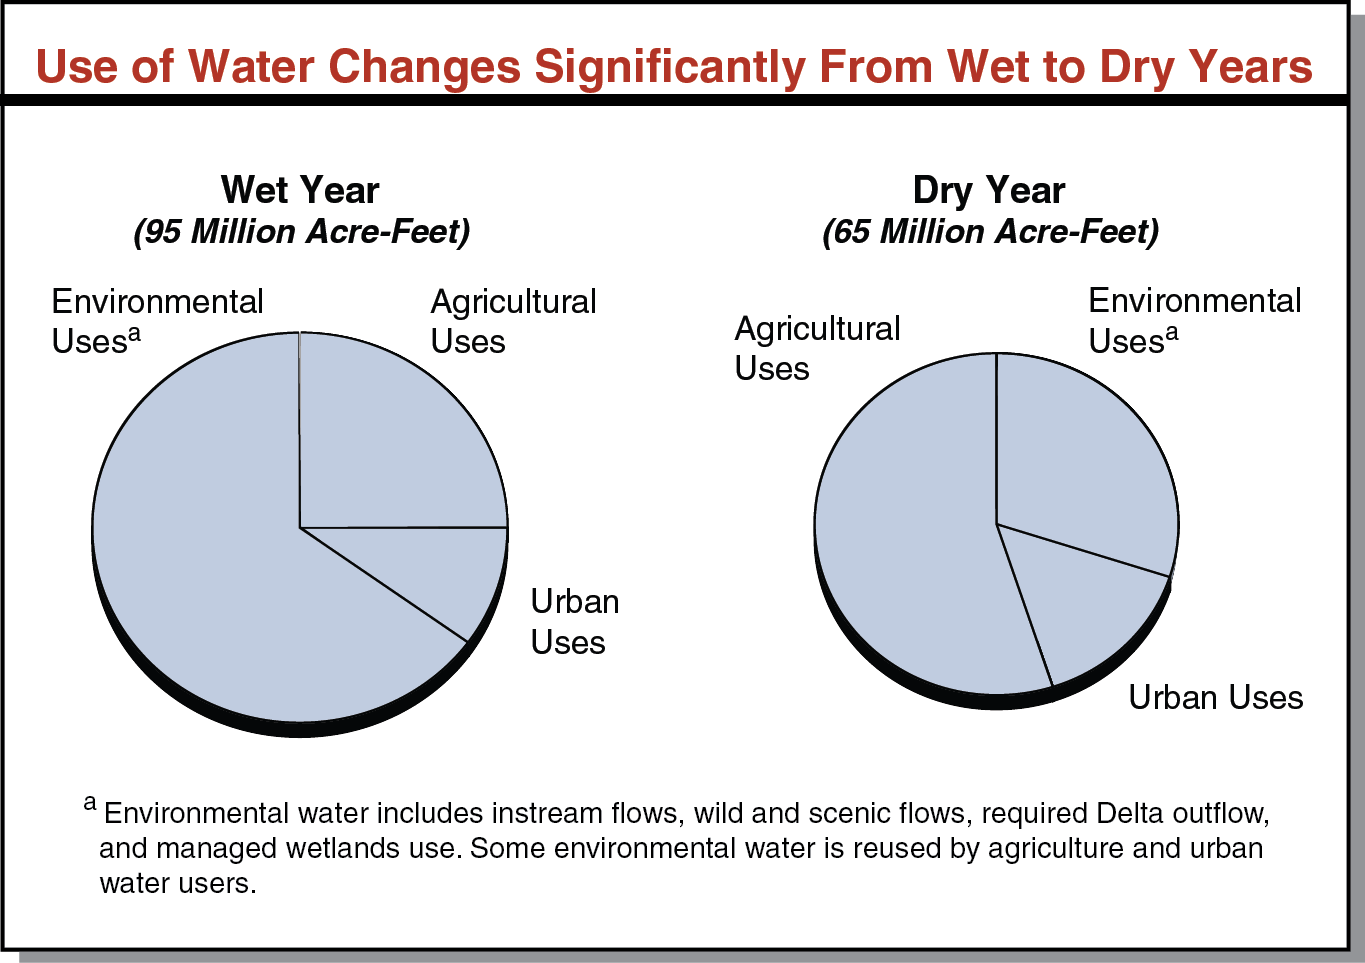 Use of Water Changes Significantly From Wet to Dry Years